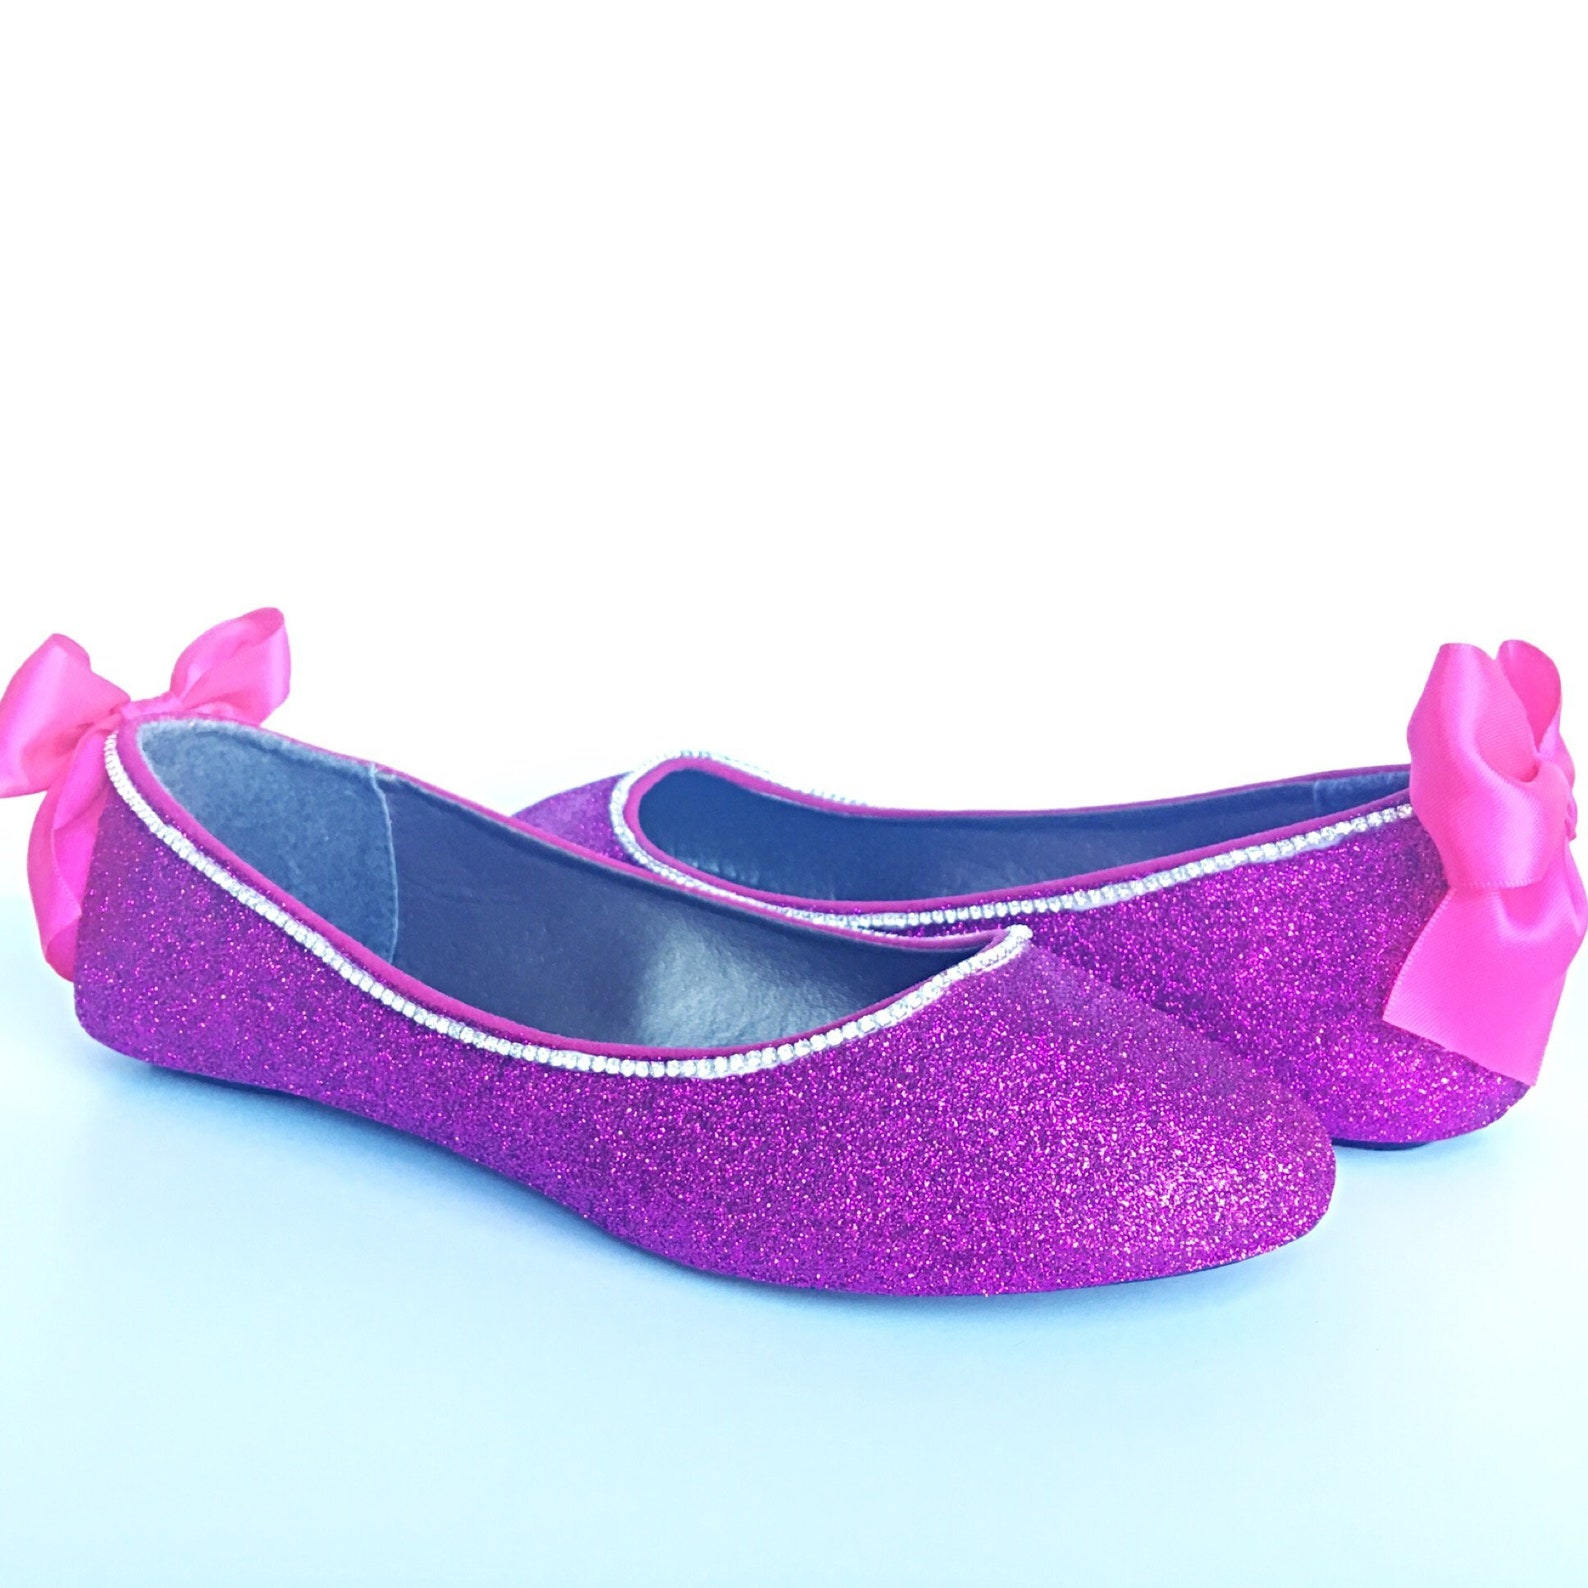 pink flats - glitter shoes - magenta ballet flats - sparkly wedding shoes - prom shoes - glitzy flats - royal purple slip ons